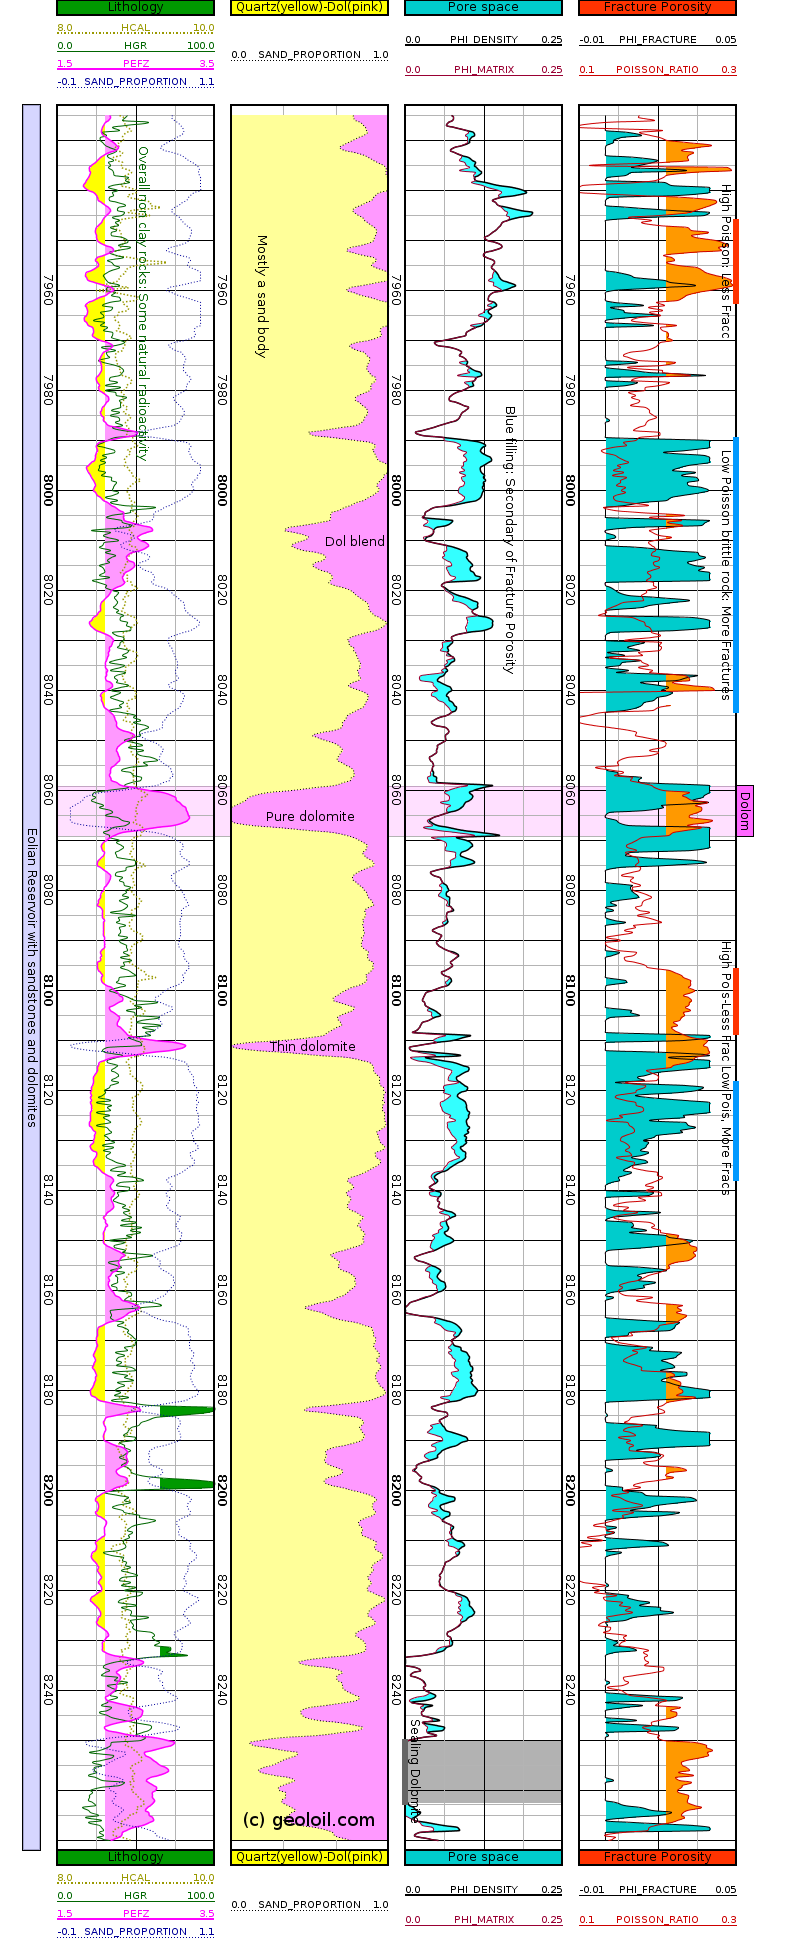 Mineral solved log plot for a sandstone-dolomite eolian environment